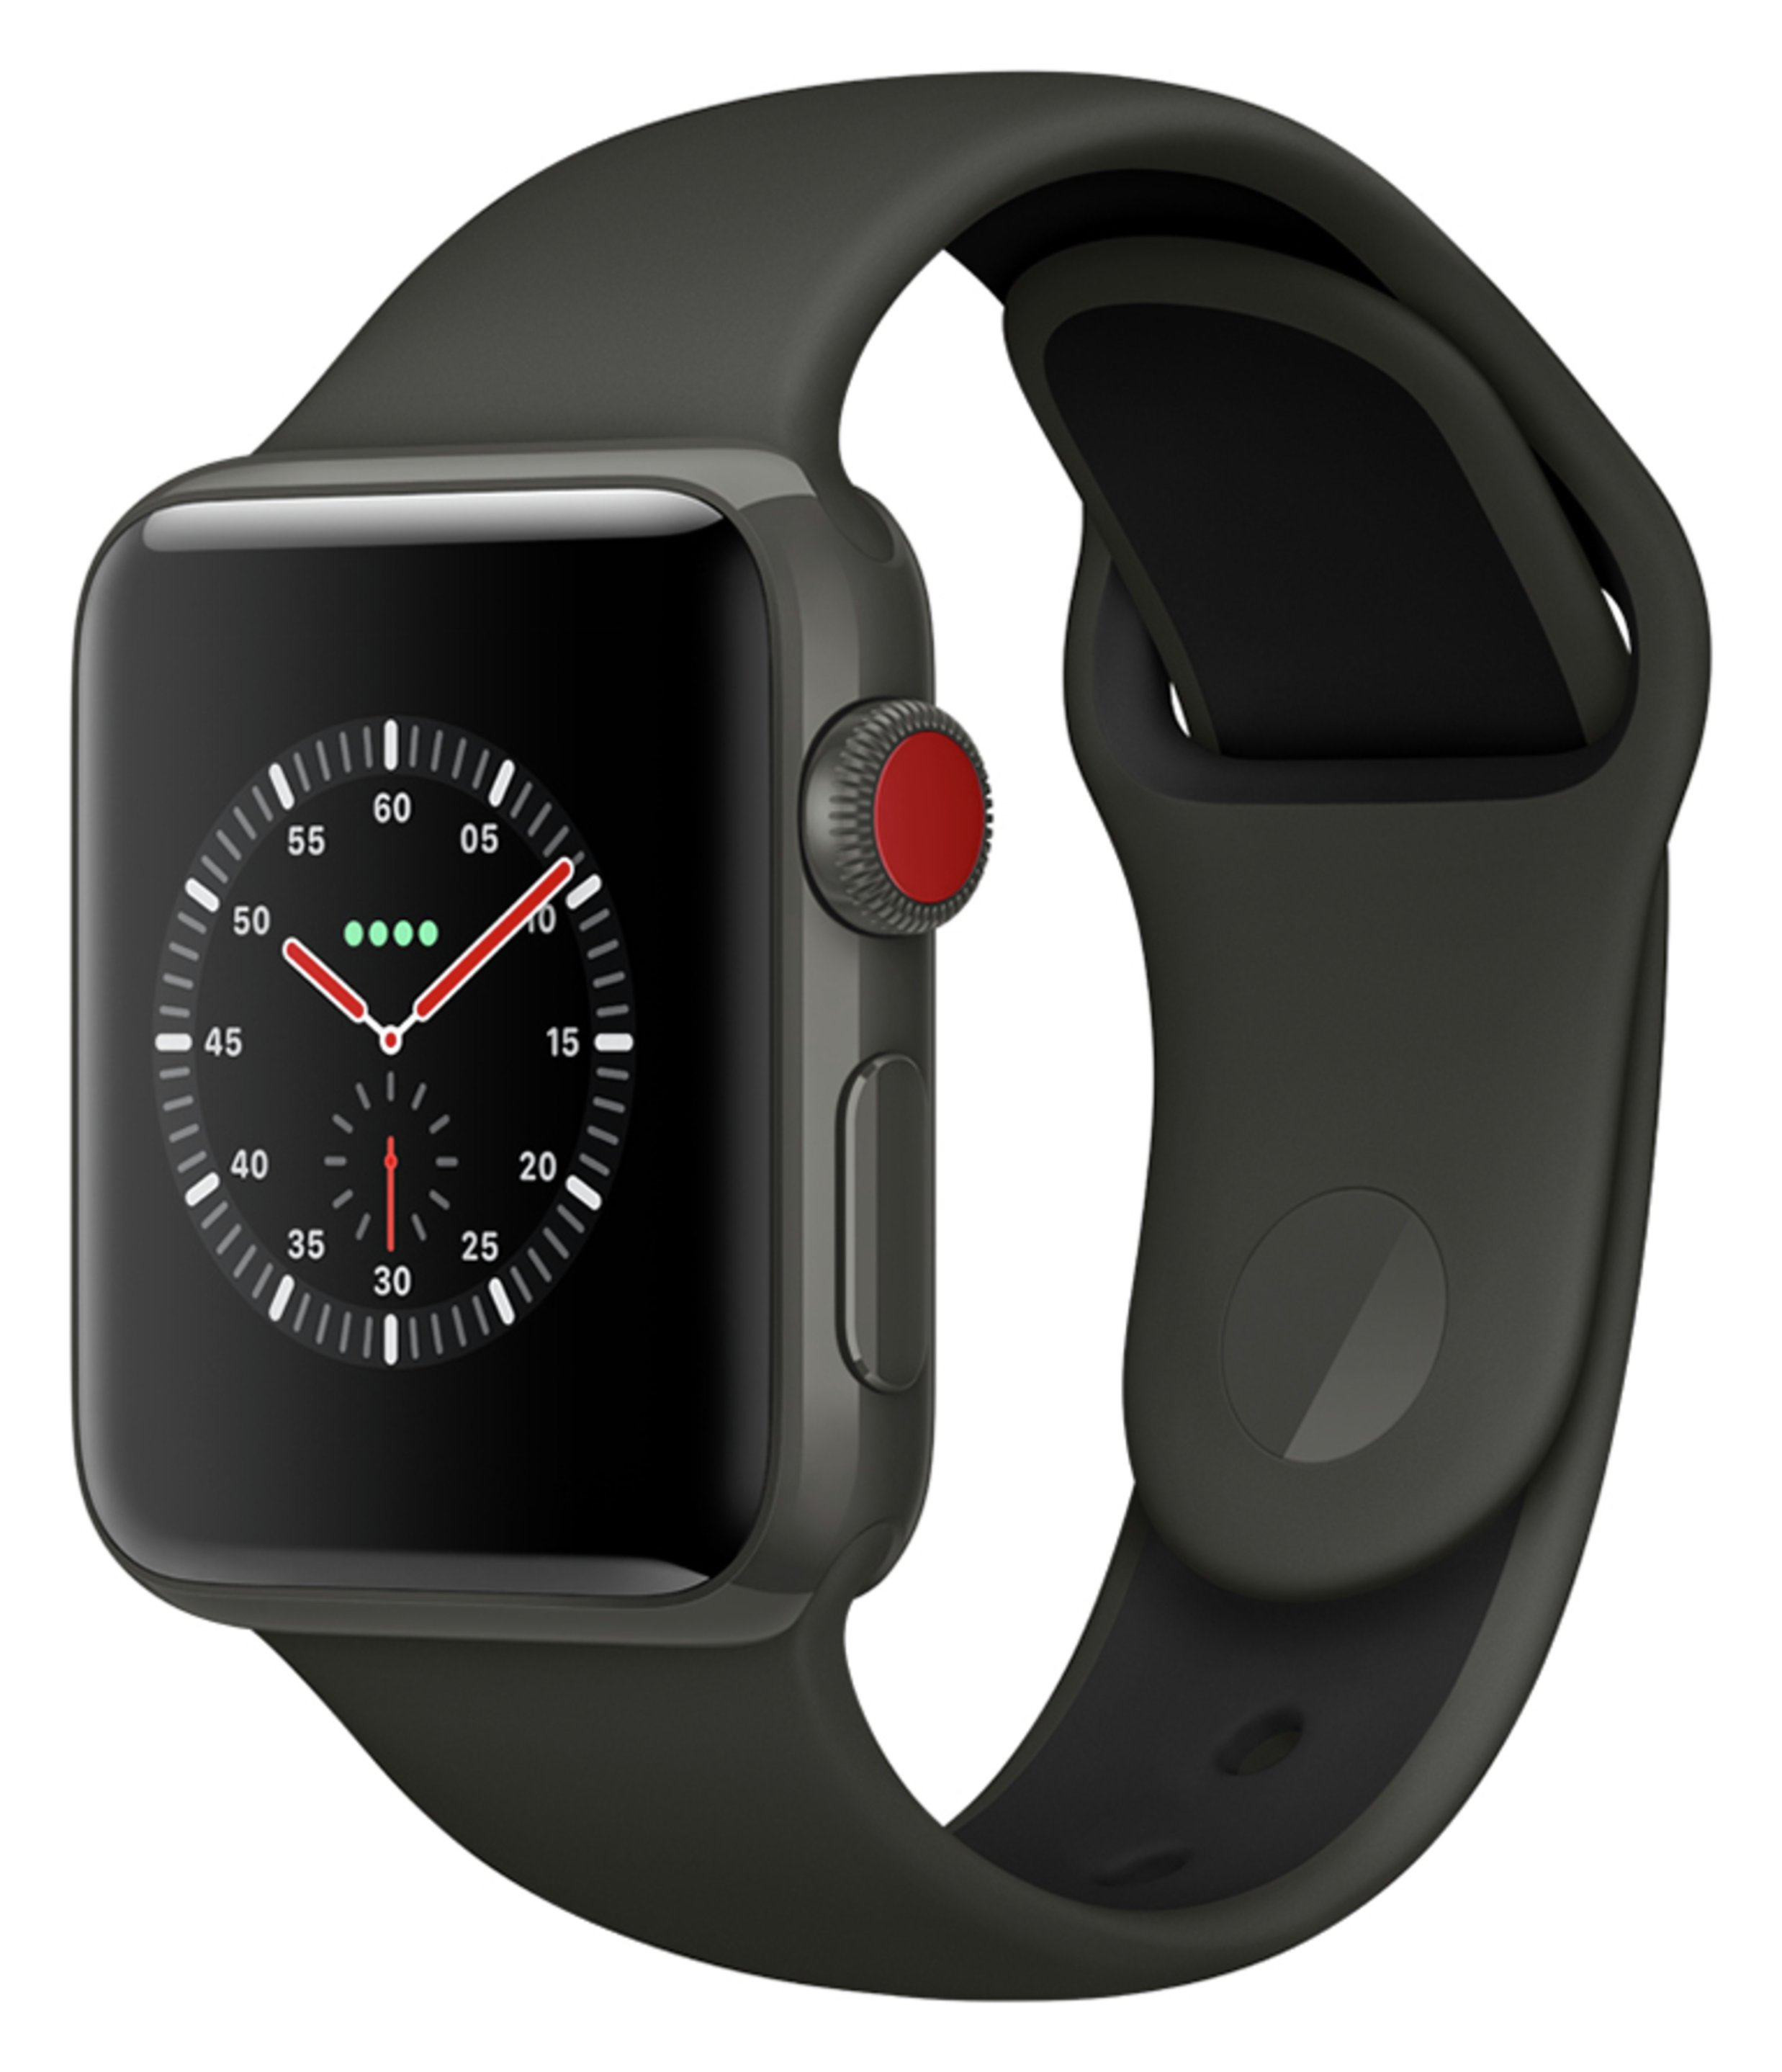 Apple Watch S3 Edition Cellular 38mm Grey Ceramic cheapest retail price